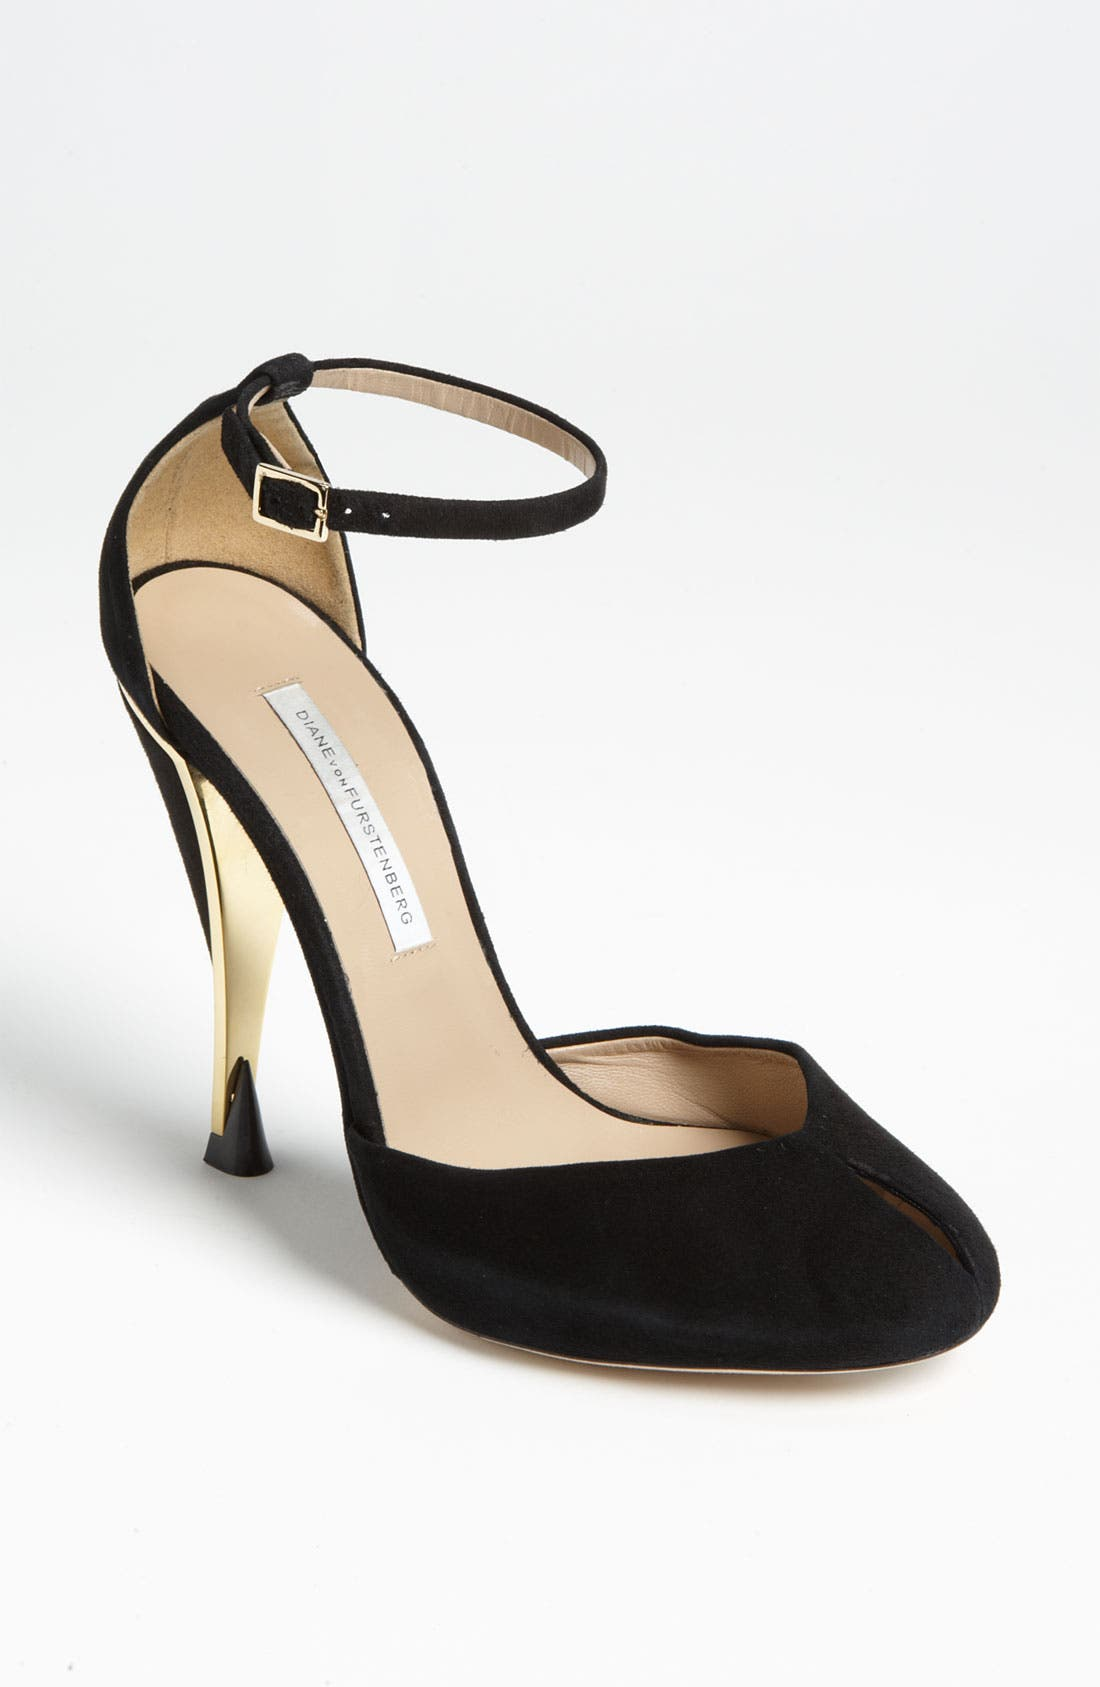 Alternate Image 1 Selected - Diane von Furstenberg 'Lucette' Pump